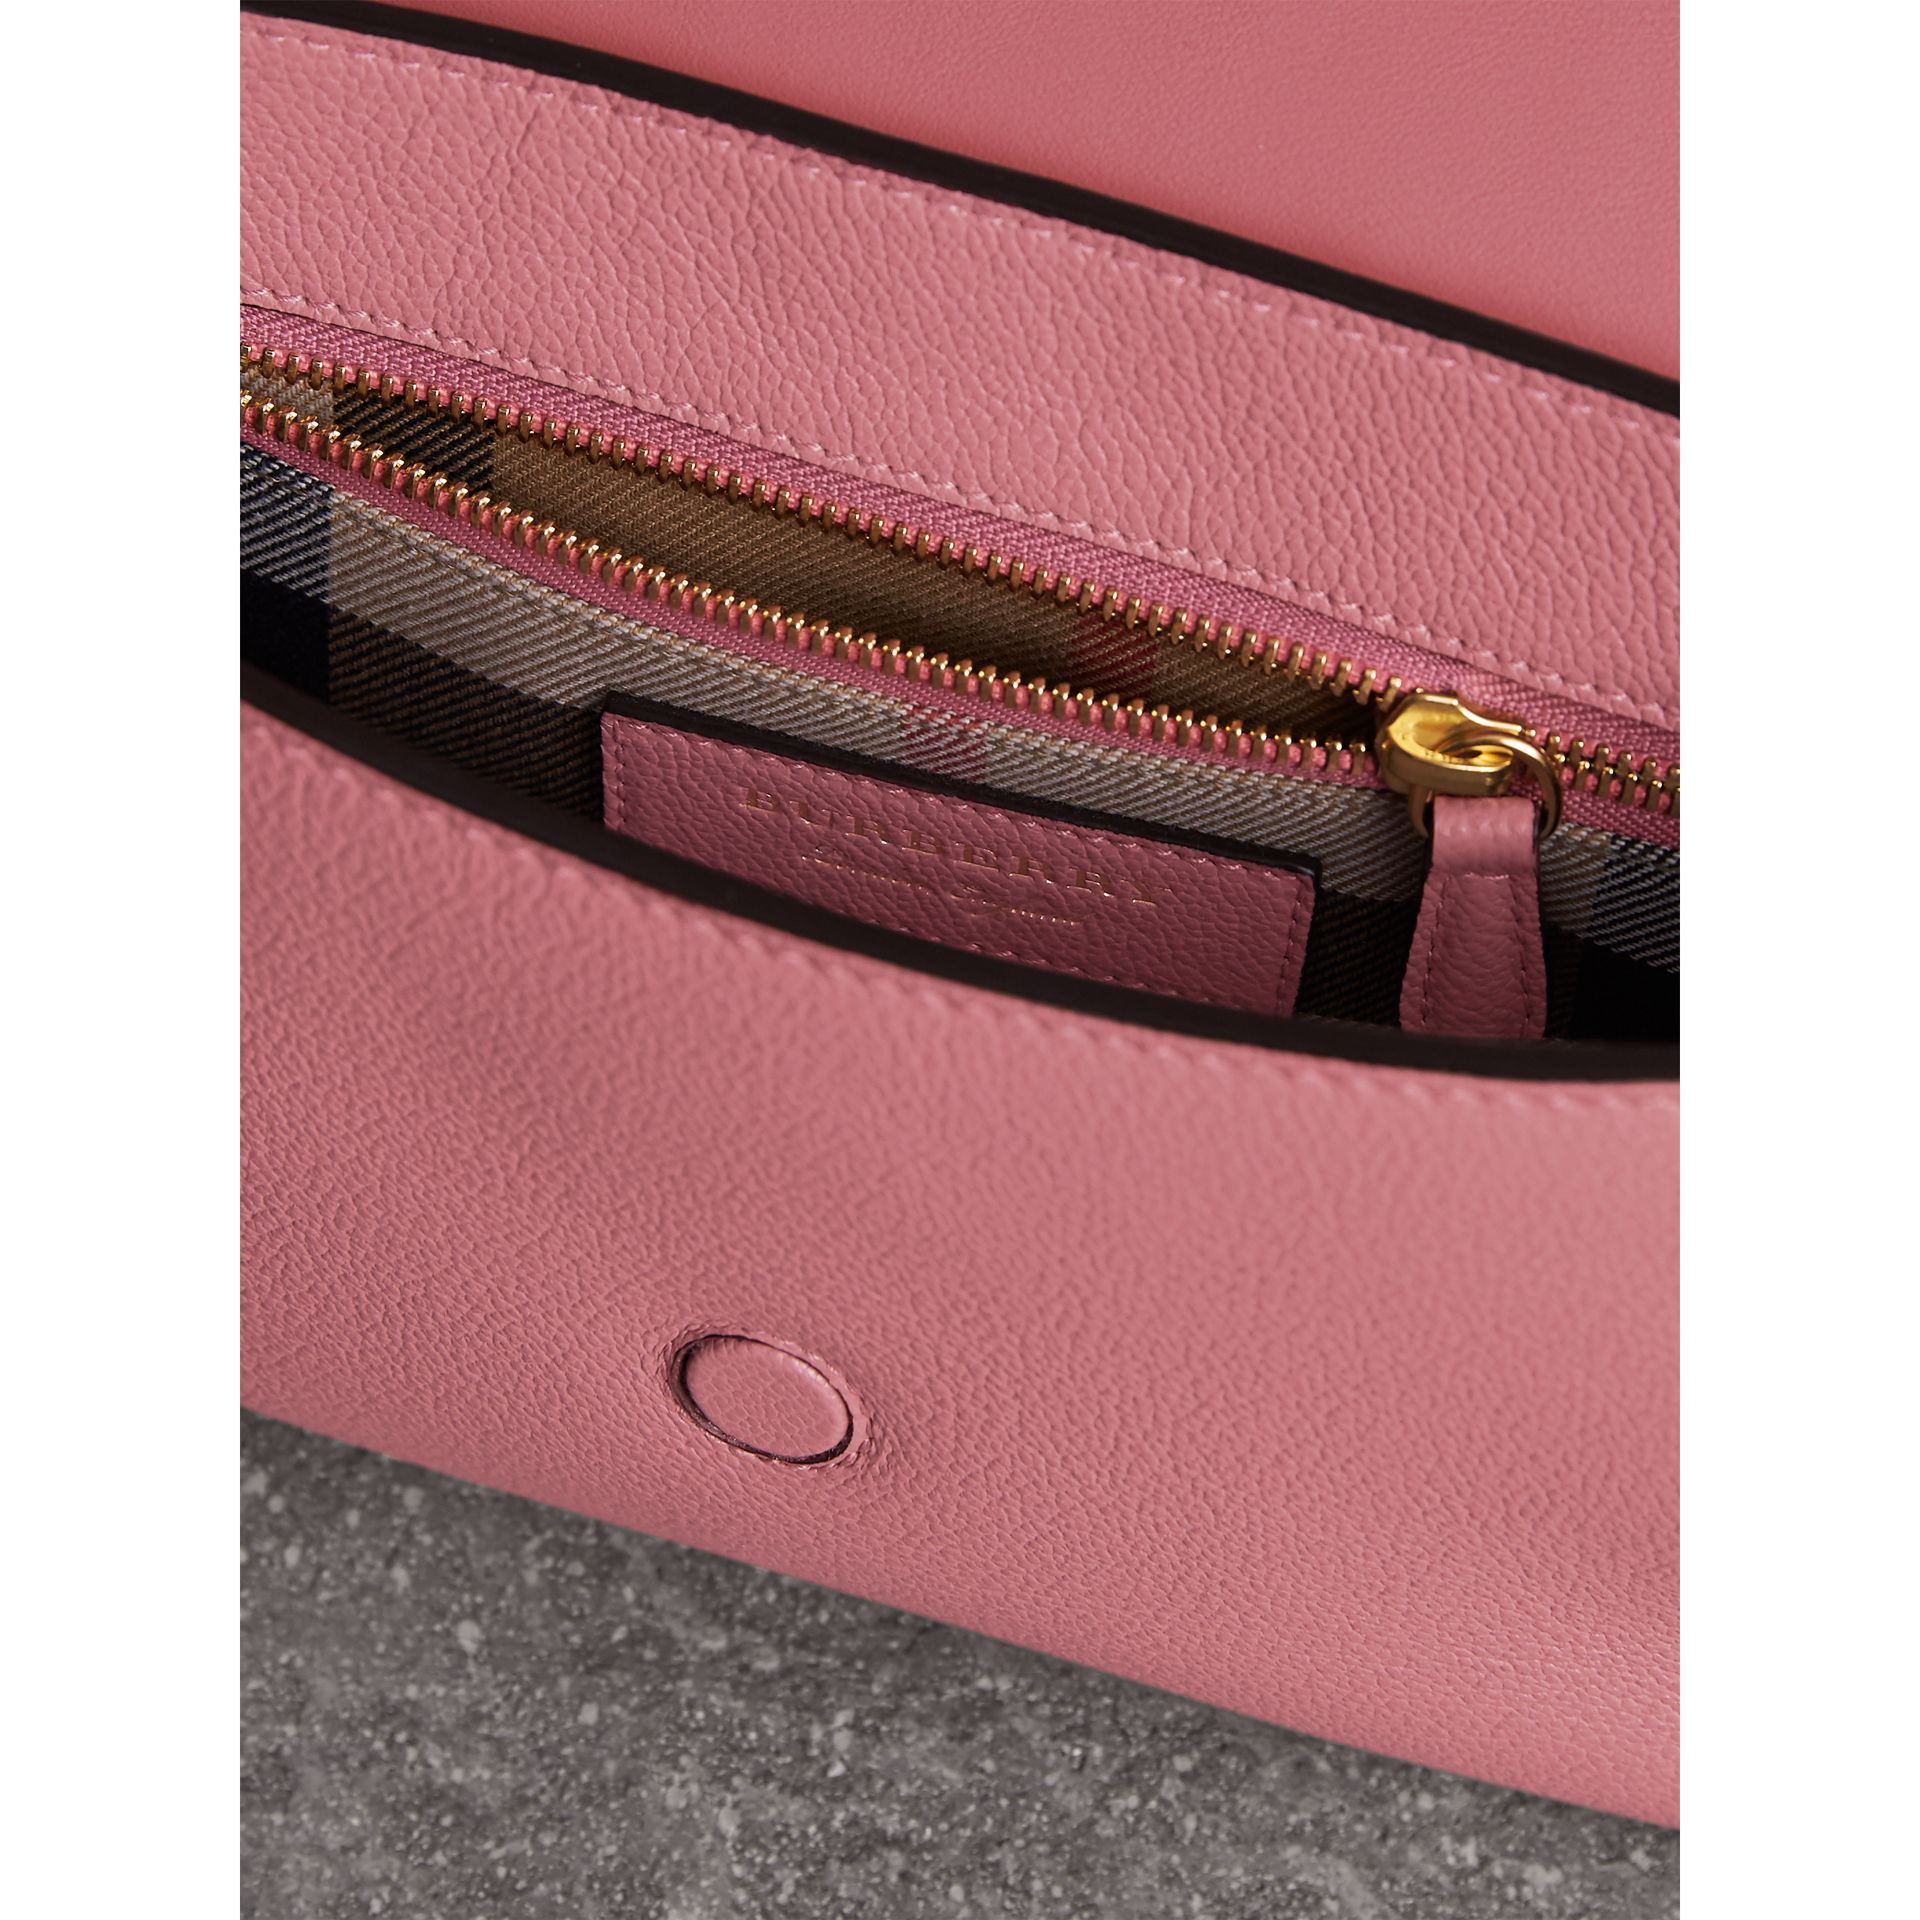 The Buckle Crossbody Bag in Leather in Dusty Pink - Women | Burberry - gallery image 6